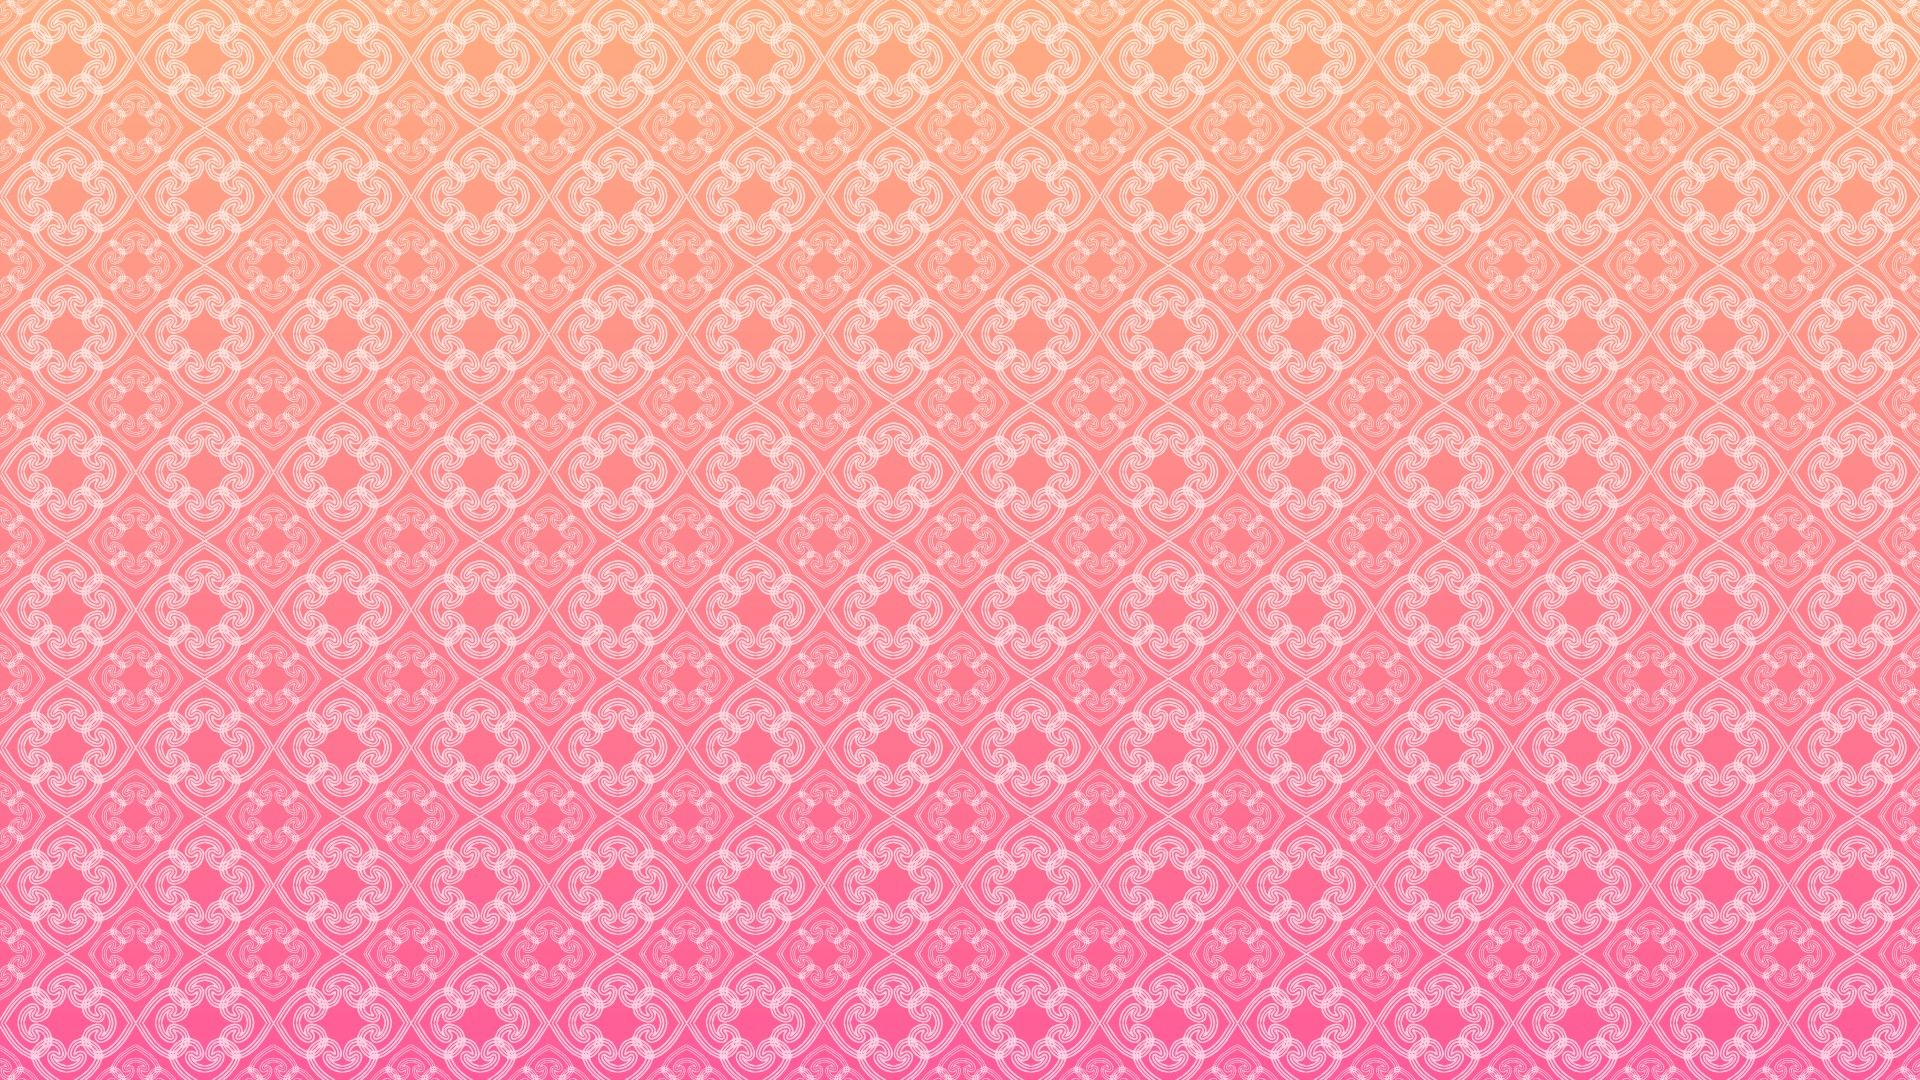 Girly Wallpaper Desktop Background For Desktop Wallpaper